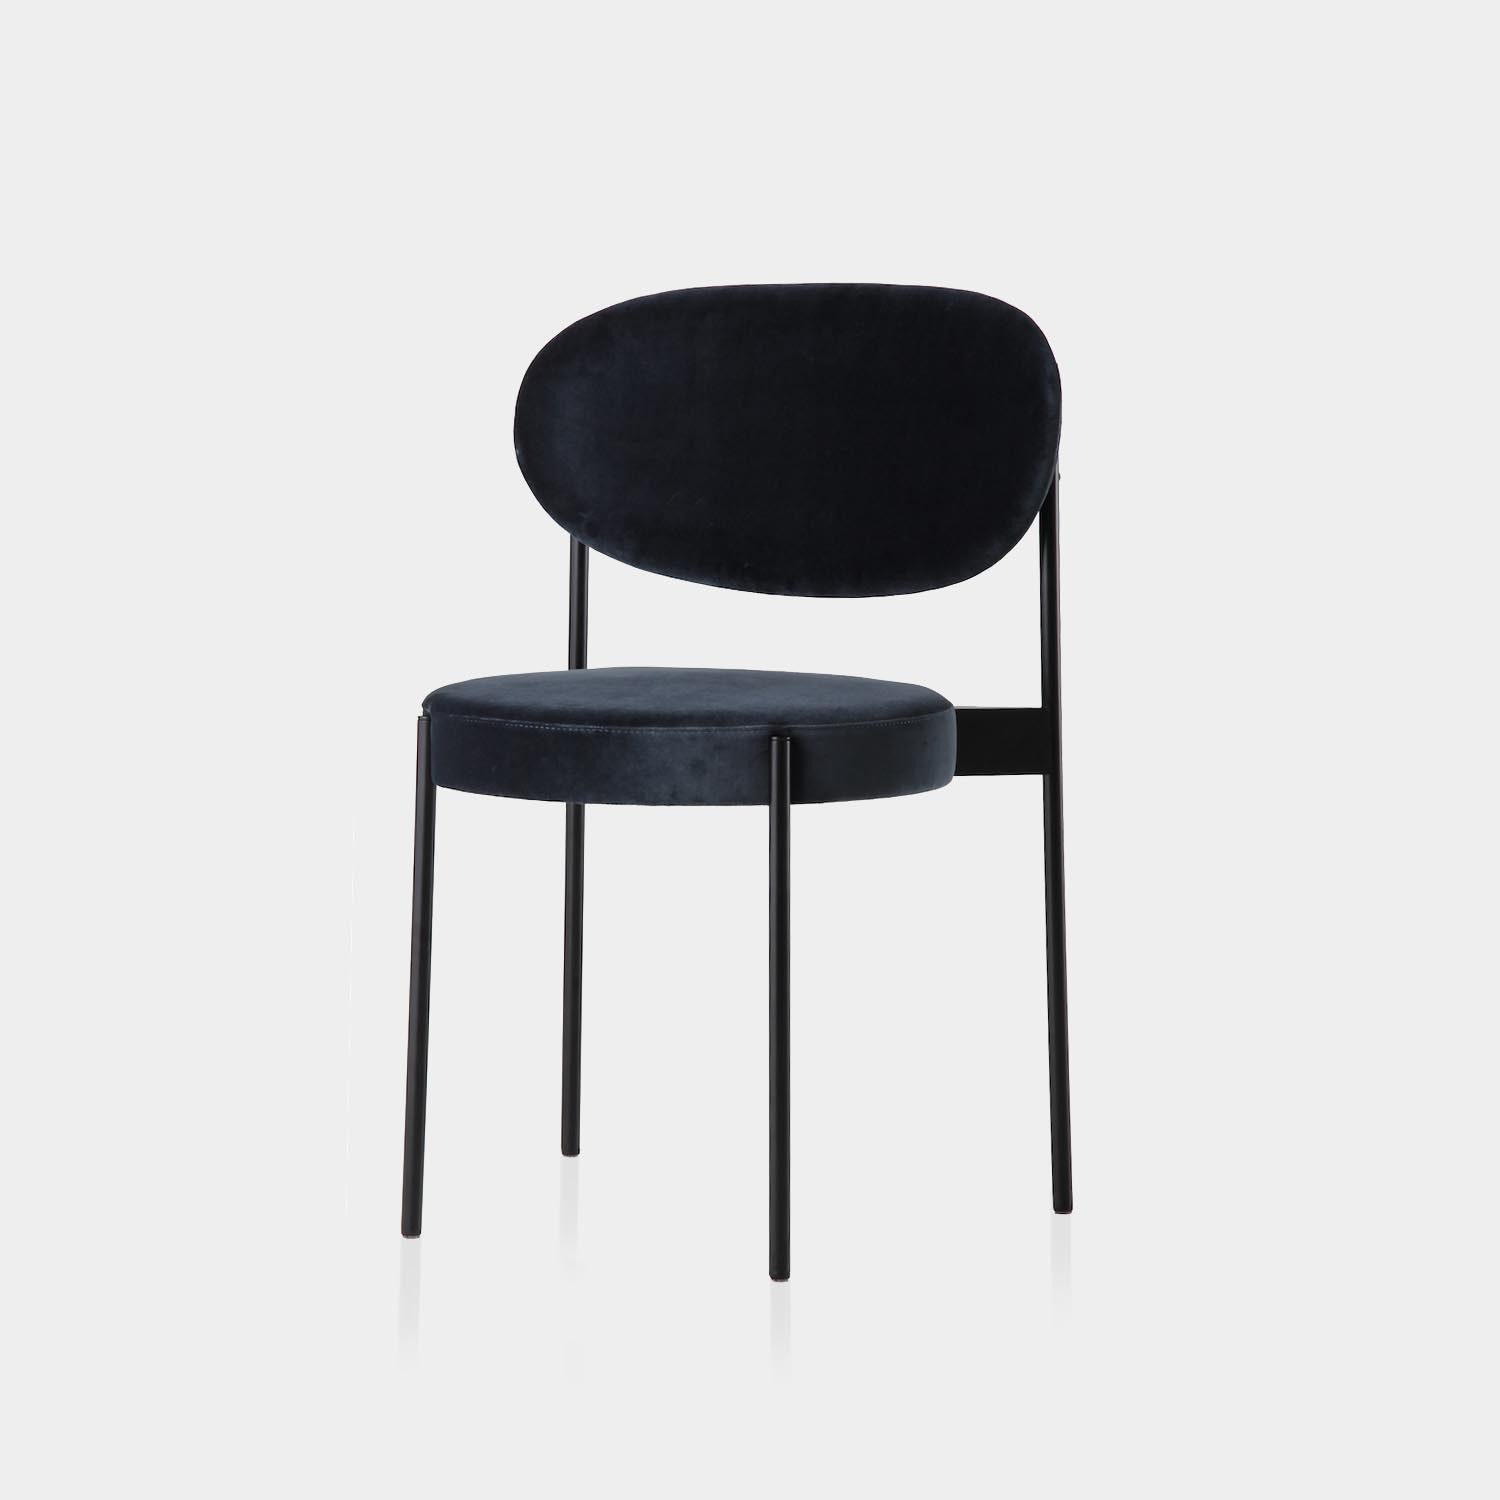 Series 430 Dining Chair, Black Frame, Harald 3 Velour